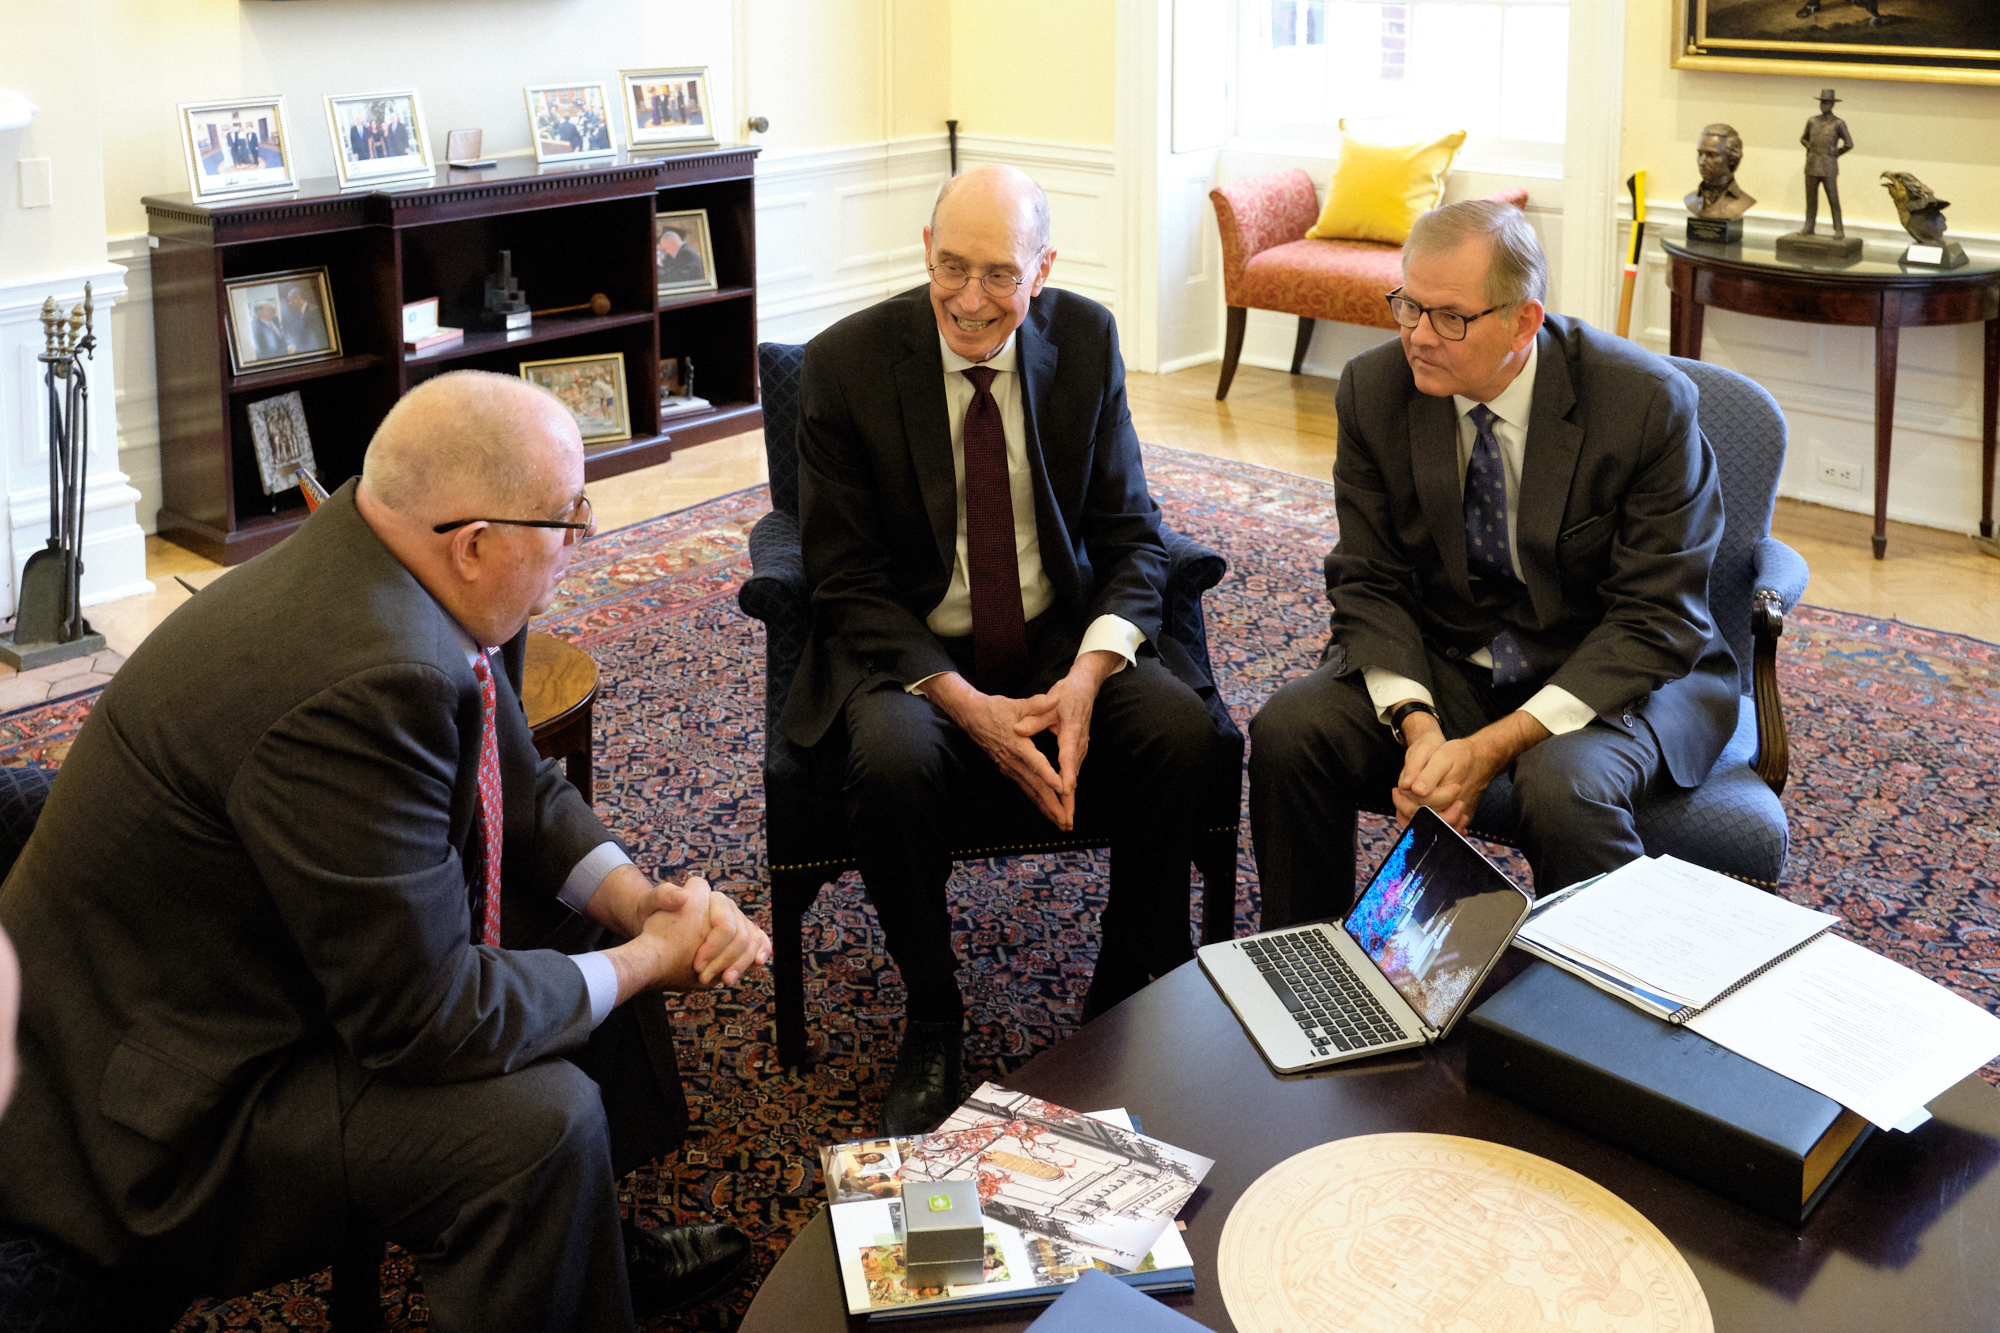 Maryland Governor Larry Hogan discusses the future Washington D.C. public open house with President Henry B. Eyring and Elder Gary E. Stevenson.